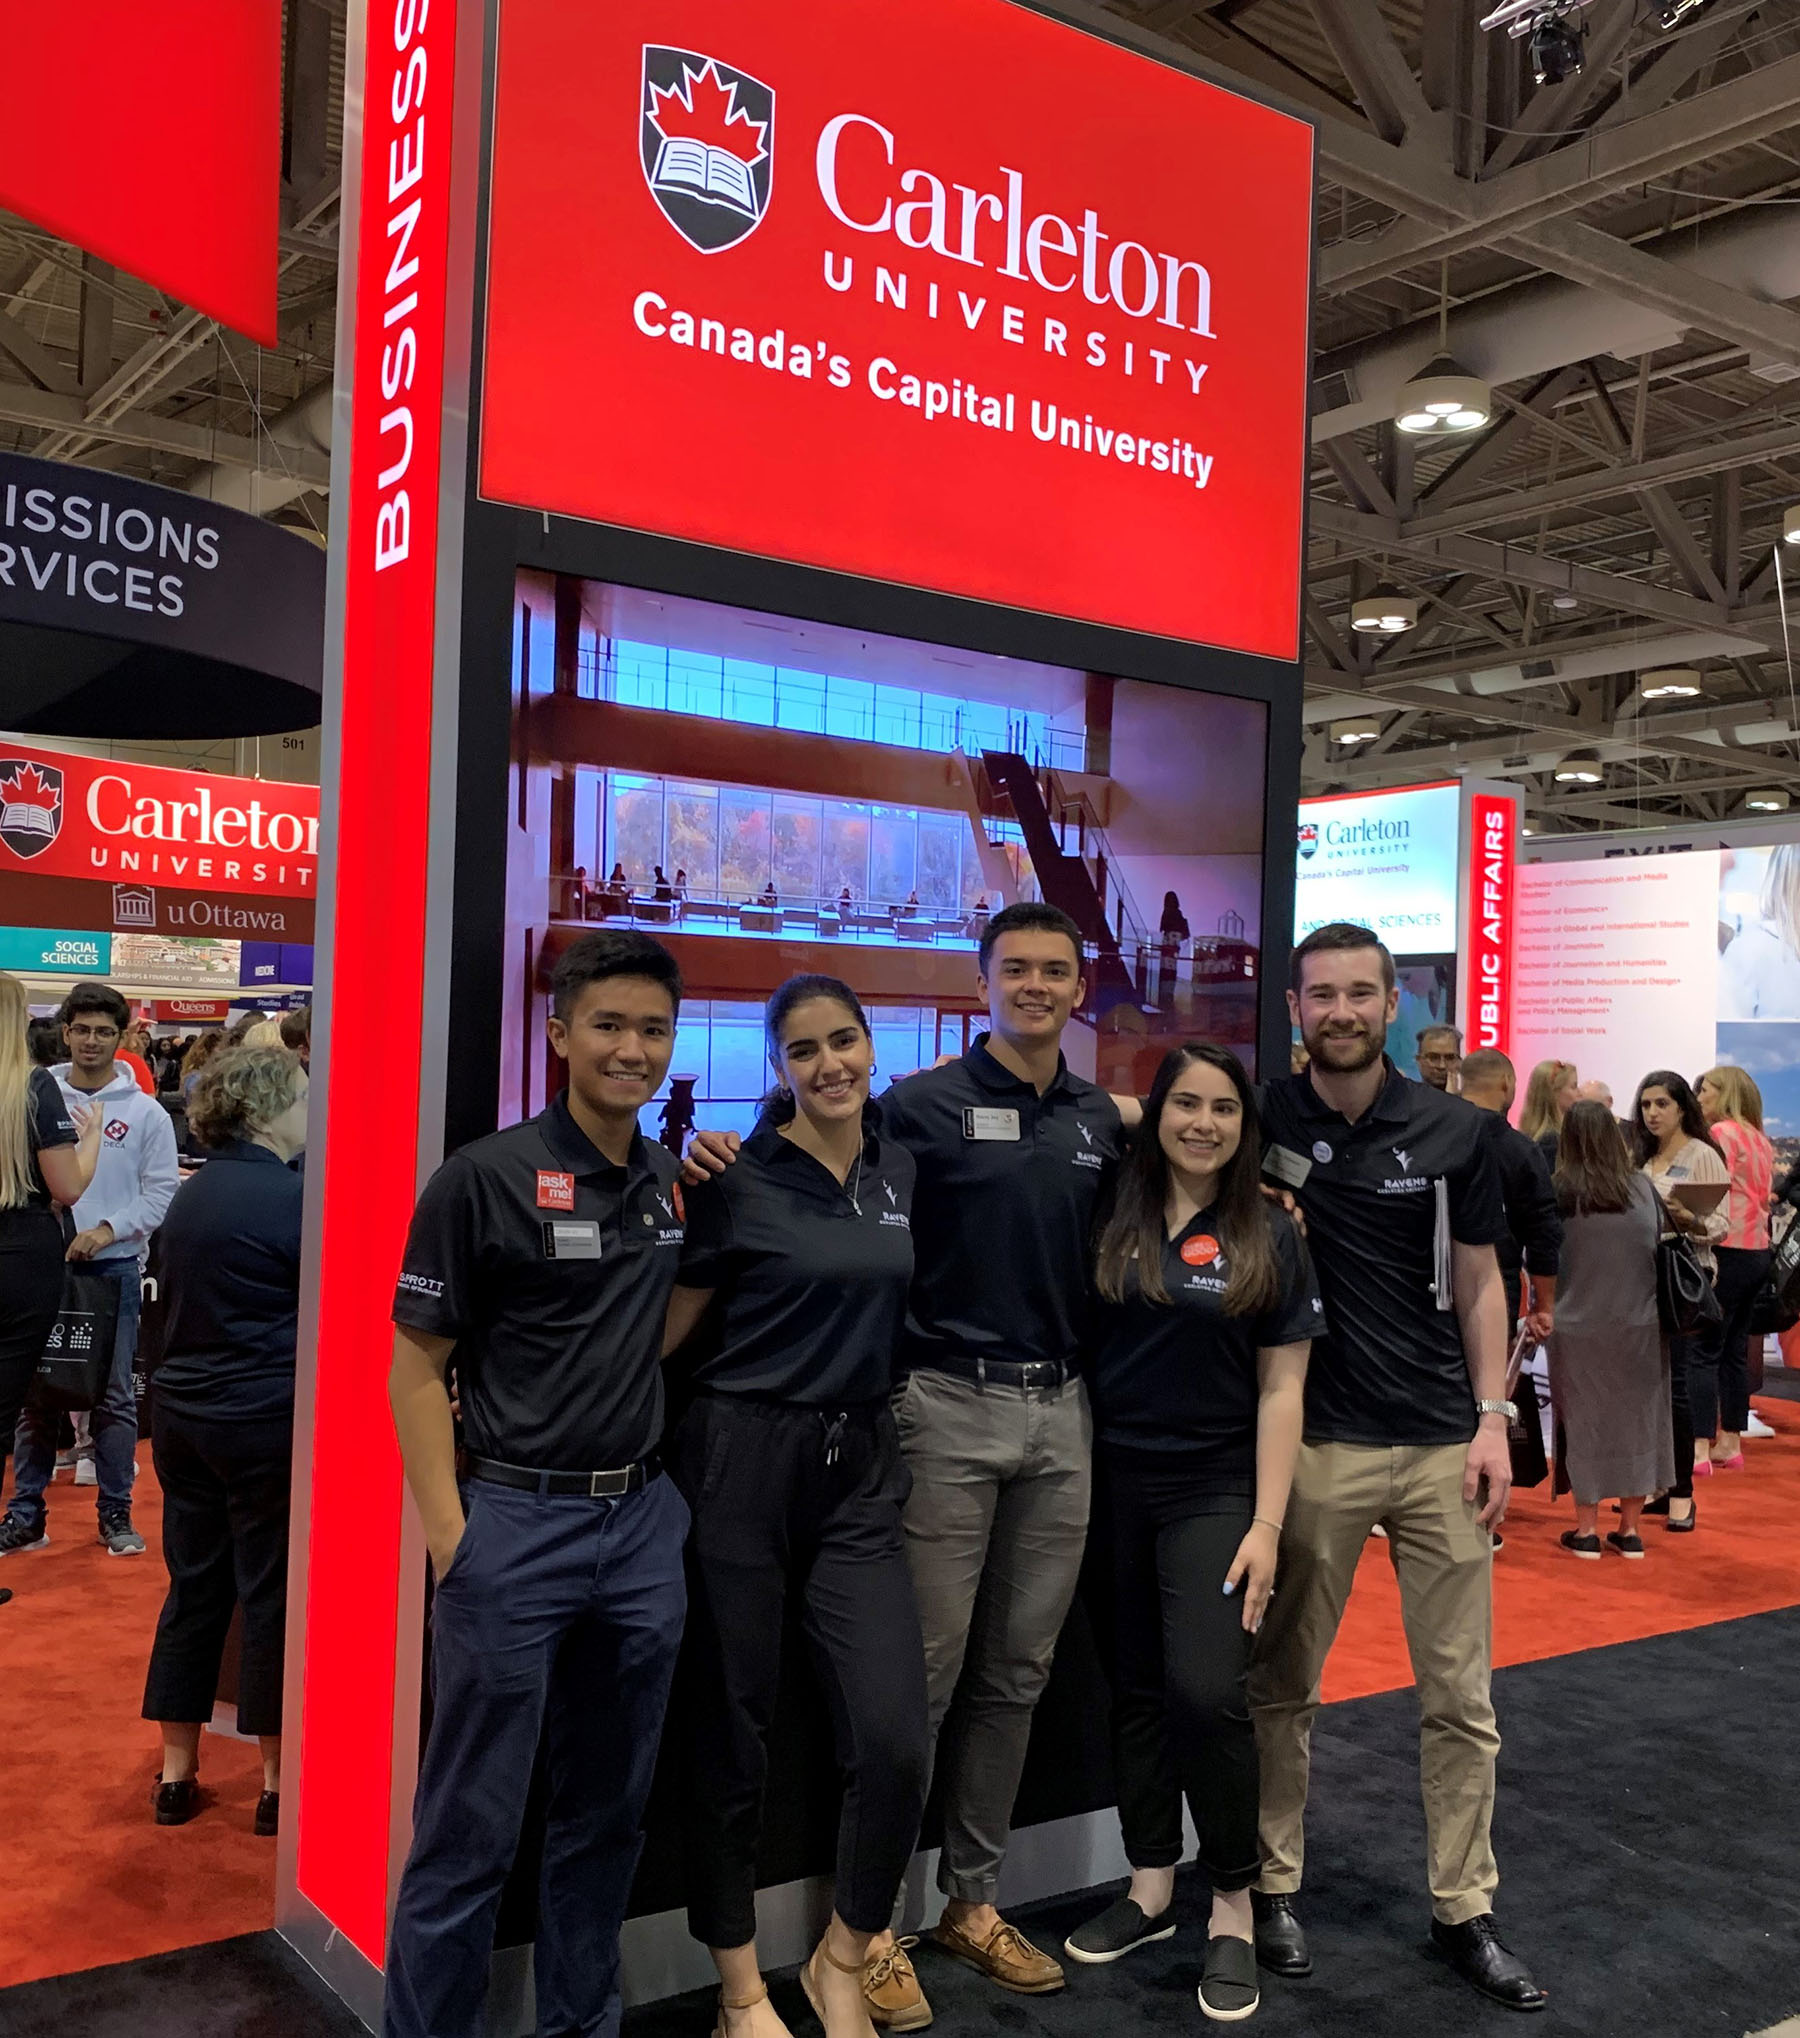 Lina with 4 other Sprott students wearing matching polo shirts at the Ontario Universities Fair